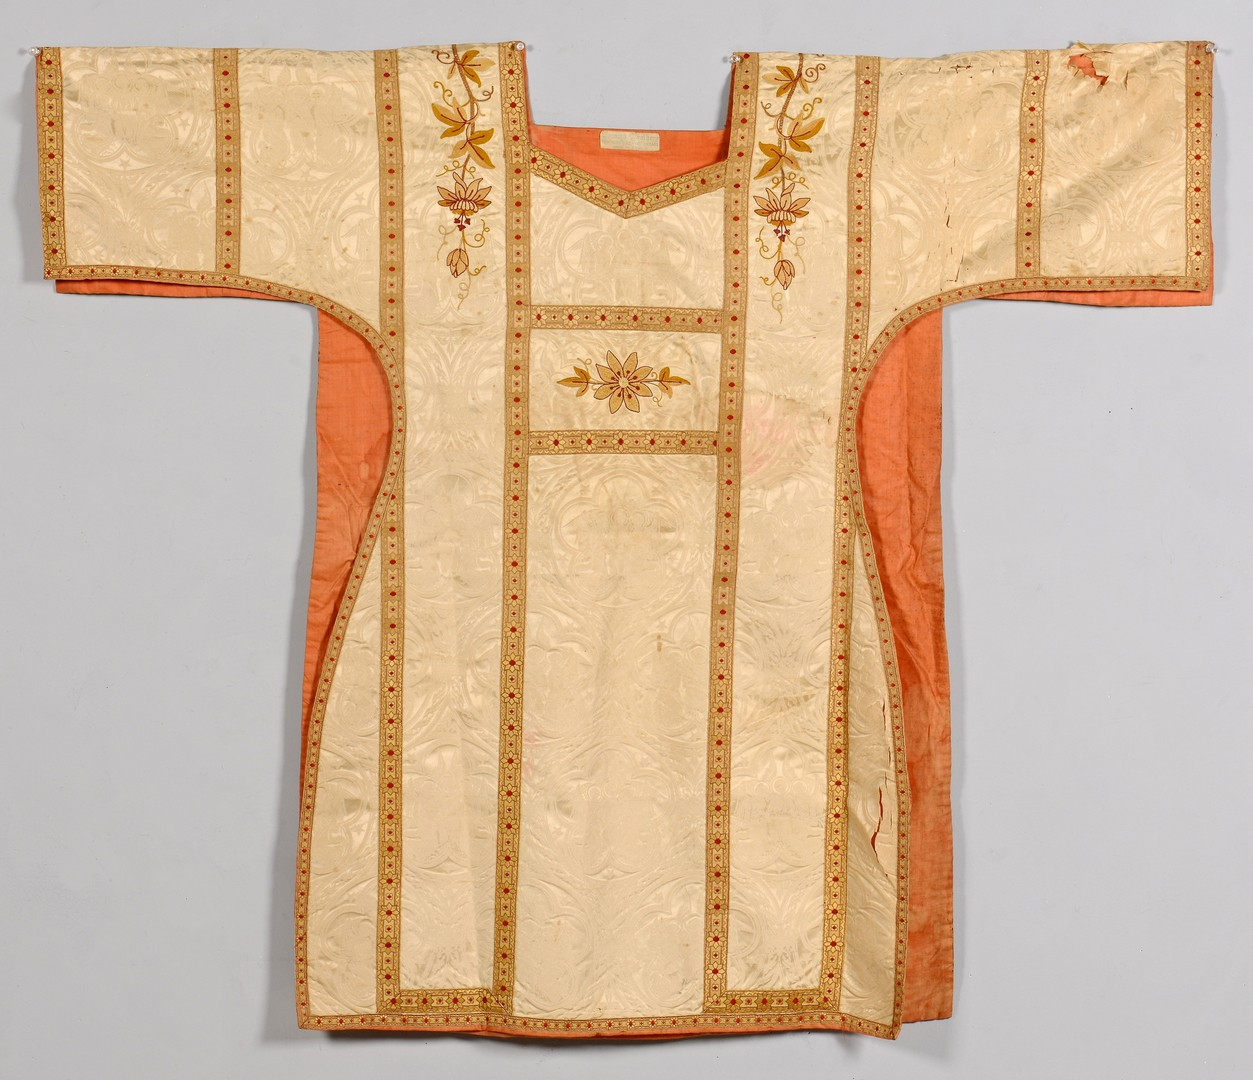 Lot 884: Embroidered Ecclesiastical Vestments & Table Cover